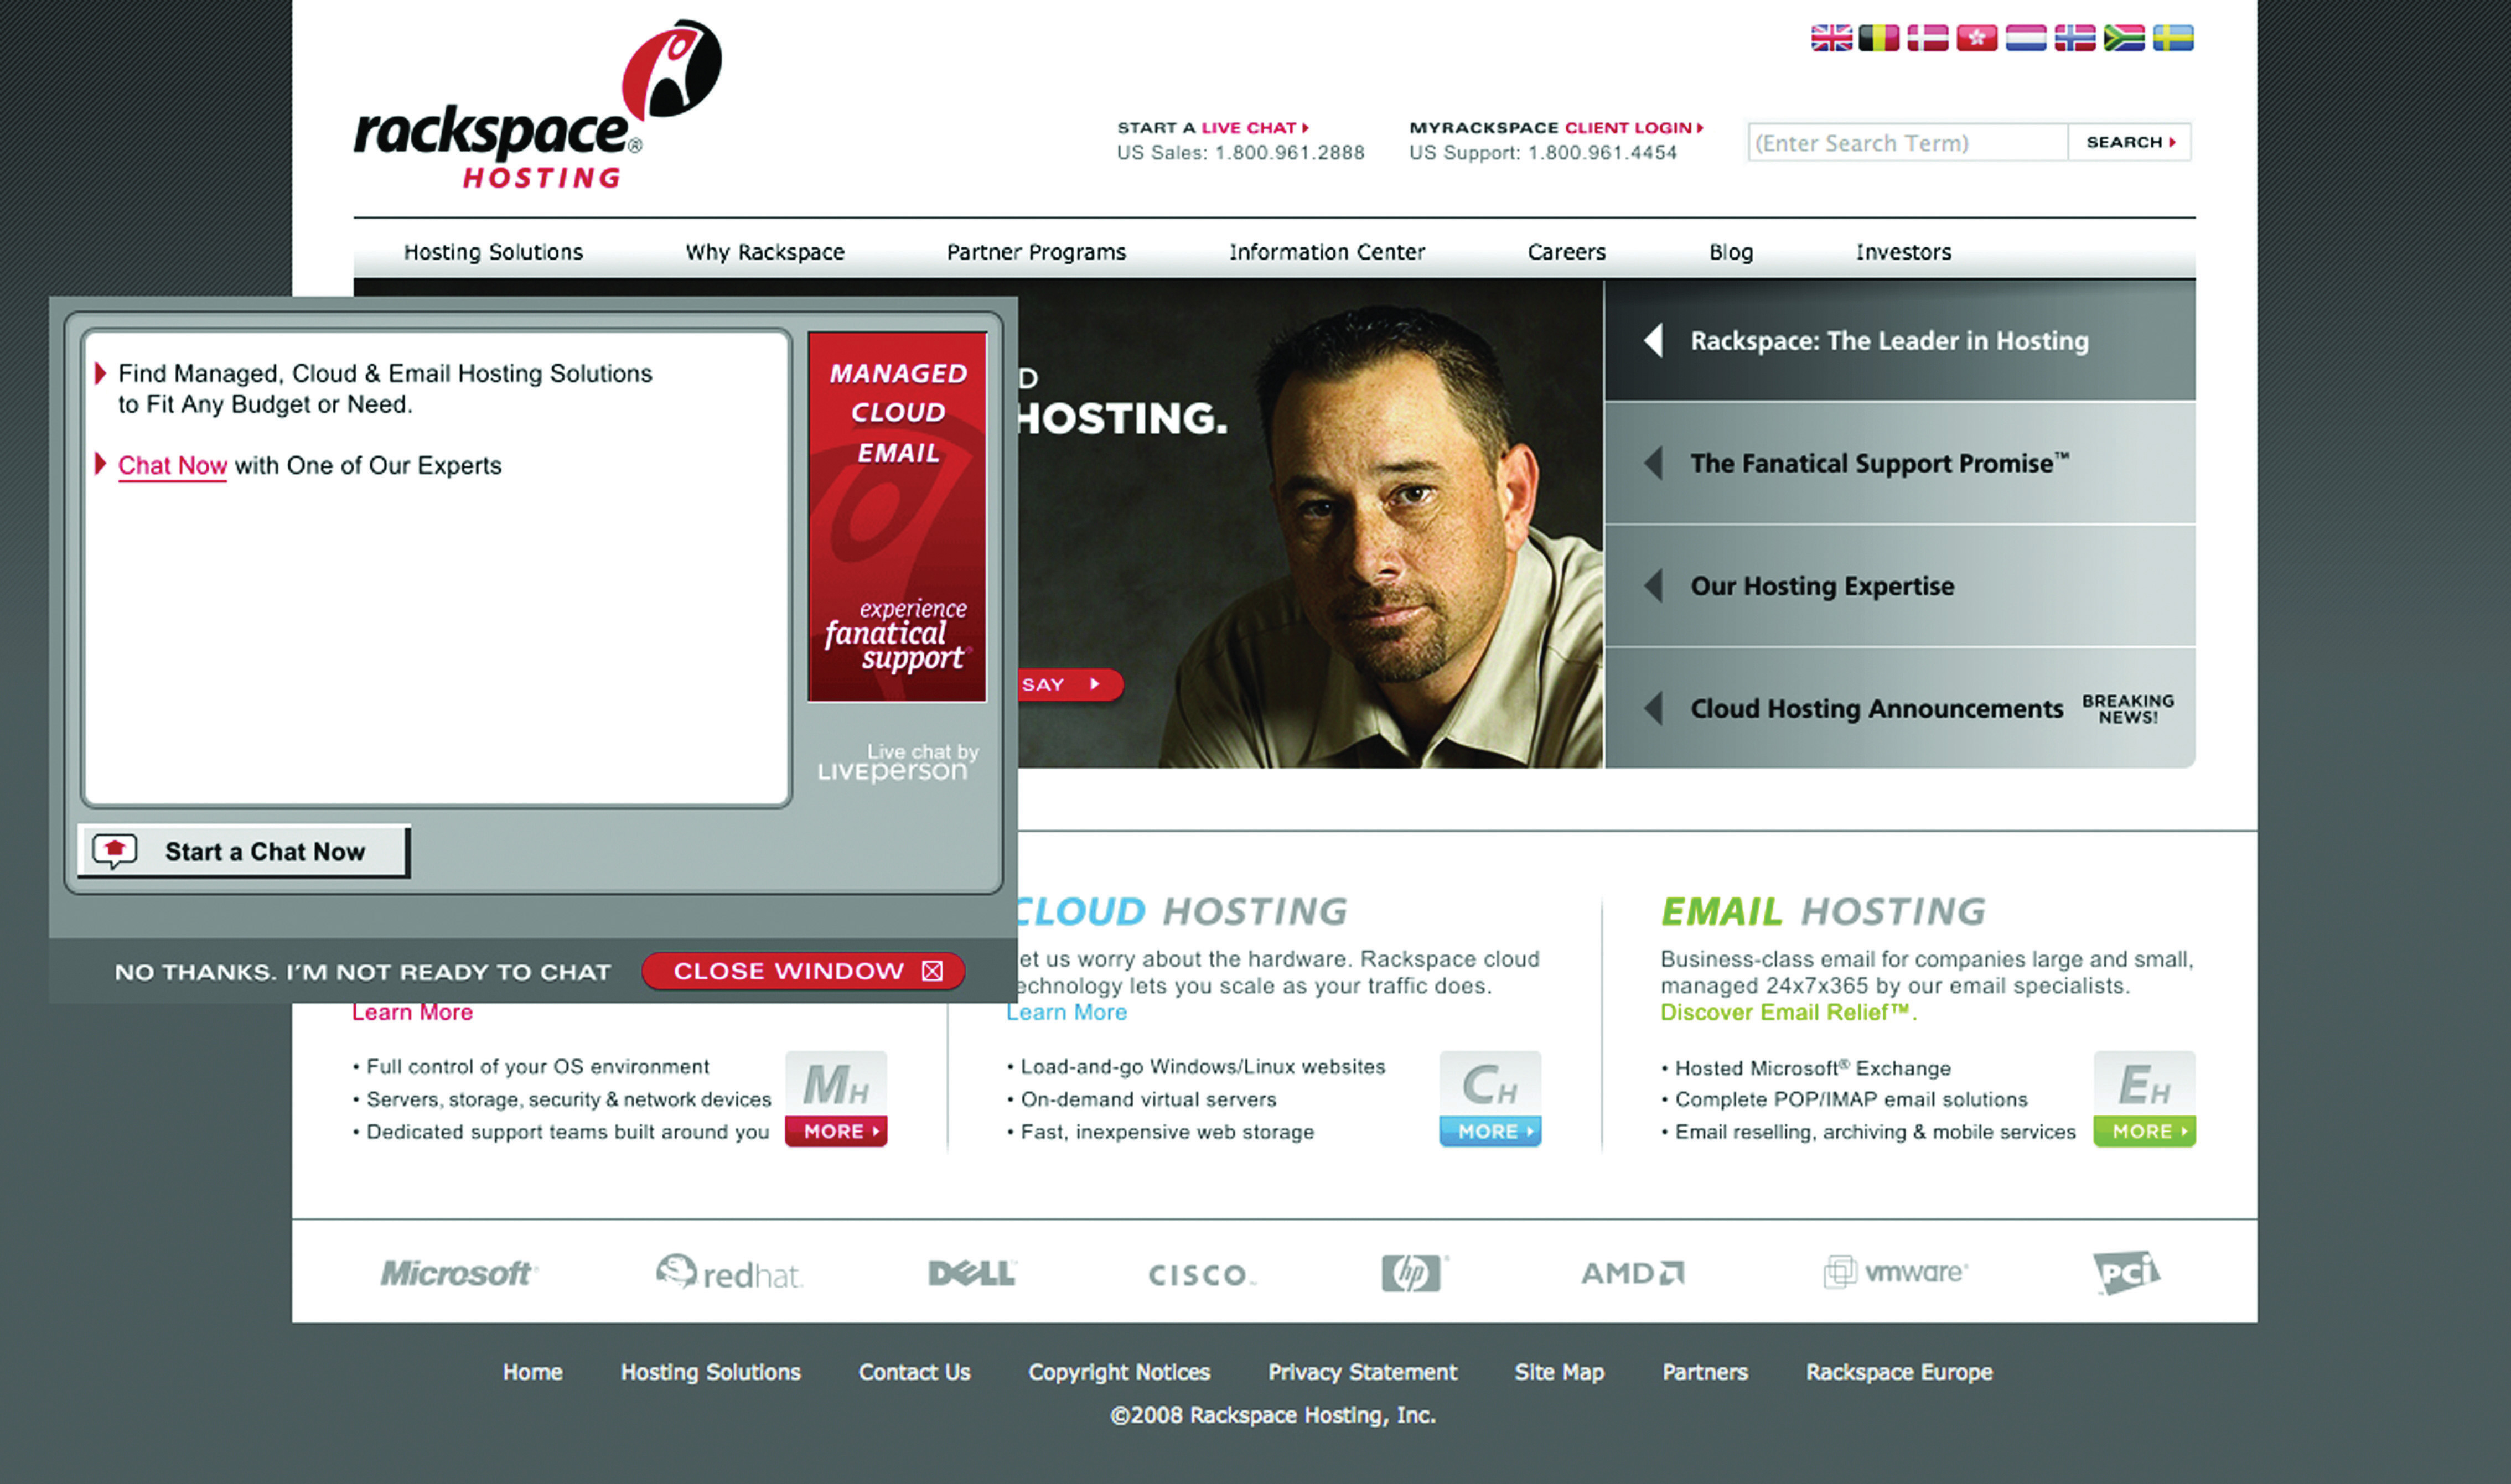 Example of an IM Pop-Up on the Rackspace Web Site